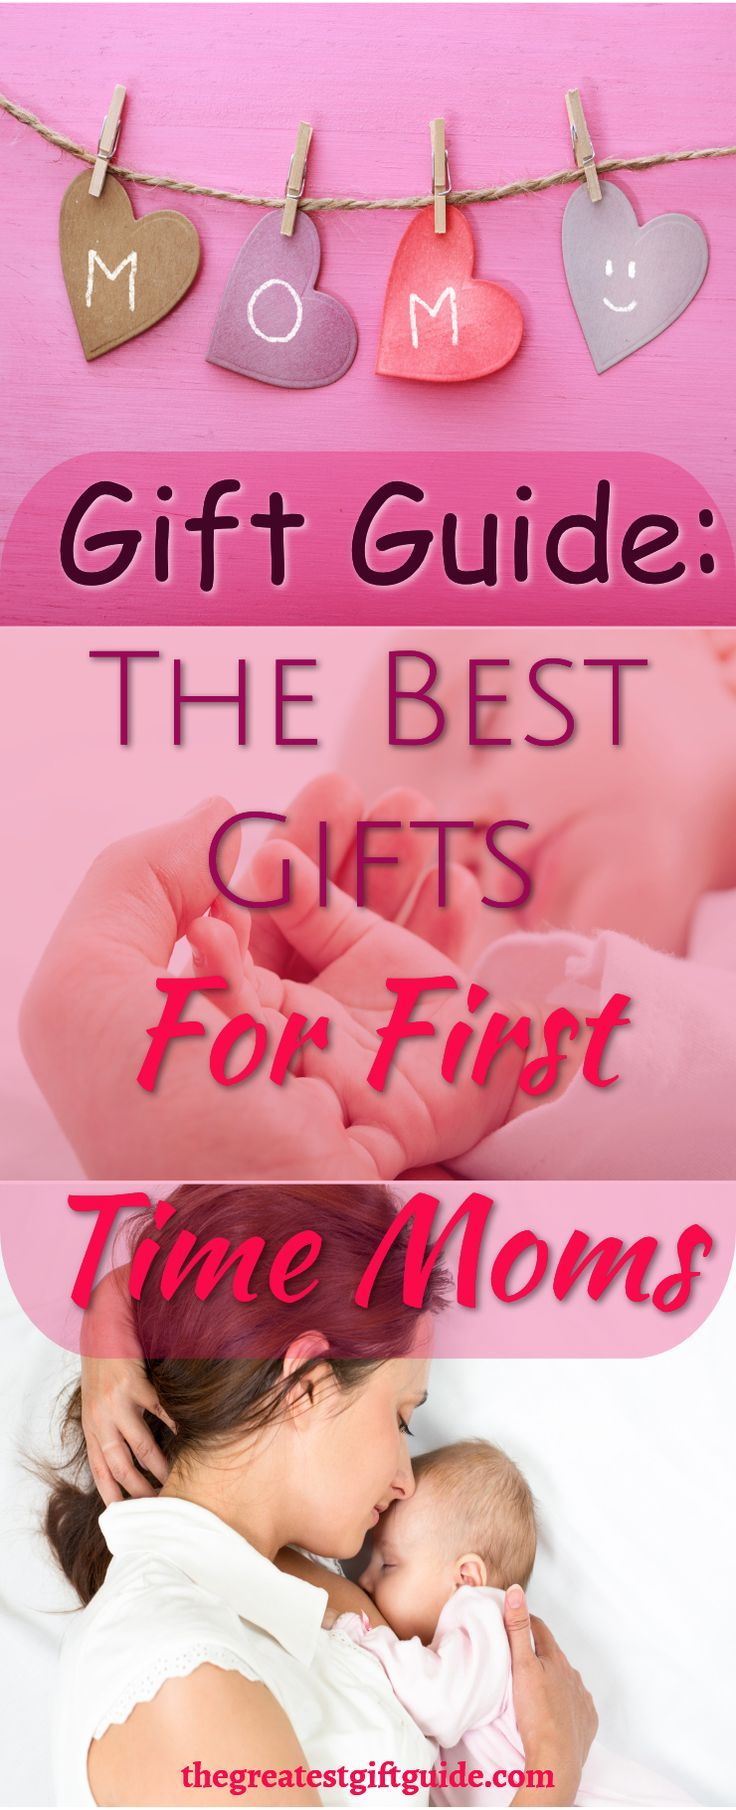 Great Gift Ideas For First Time Moms That Will Make Their Lives Easier Unique New Mom Gifts And From Husbands We Even Have Some